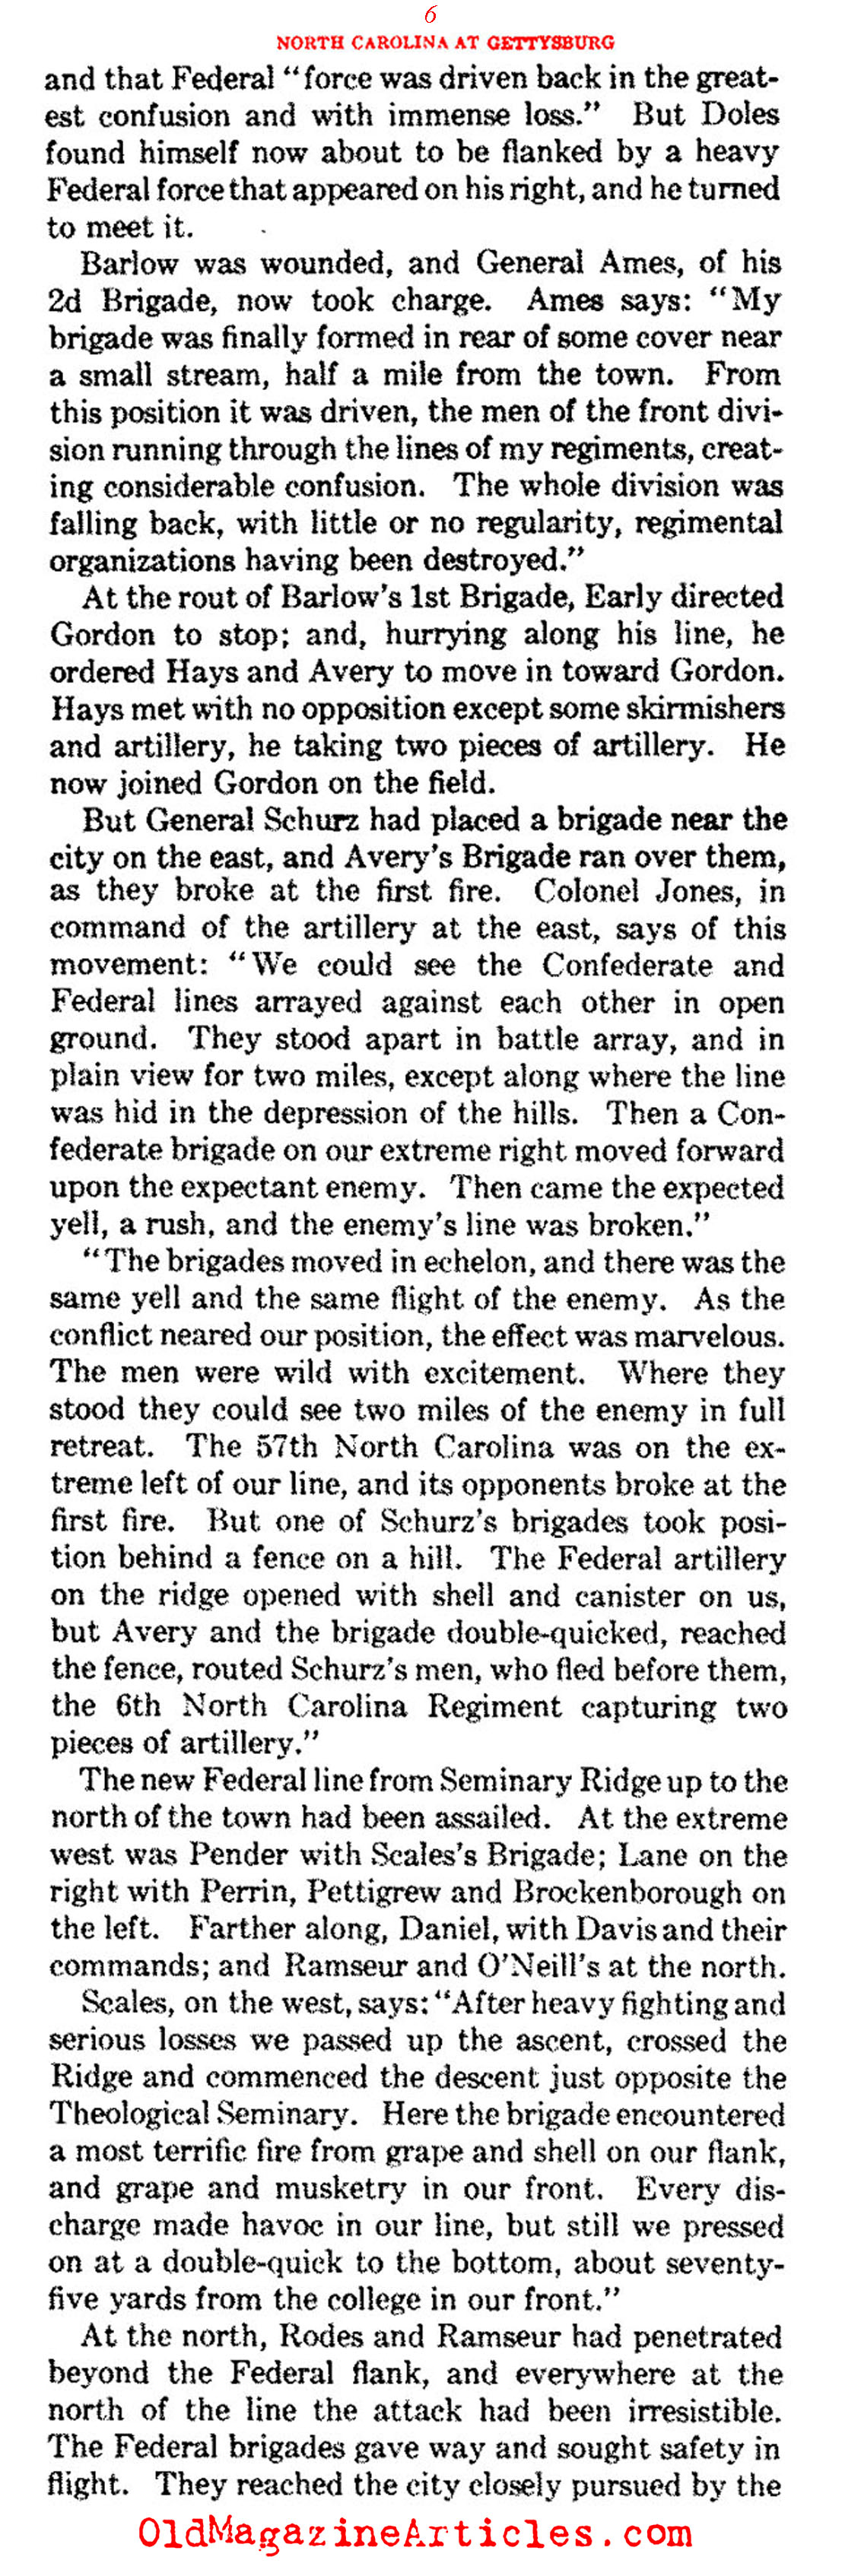 The North Carolina Presence at Gettysburg  (Confederate Veteran Magazine, 1930)